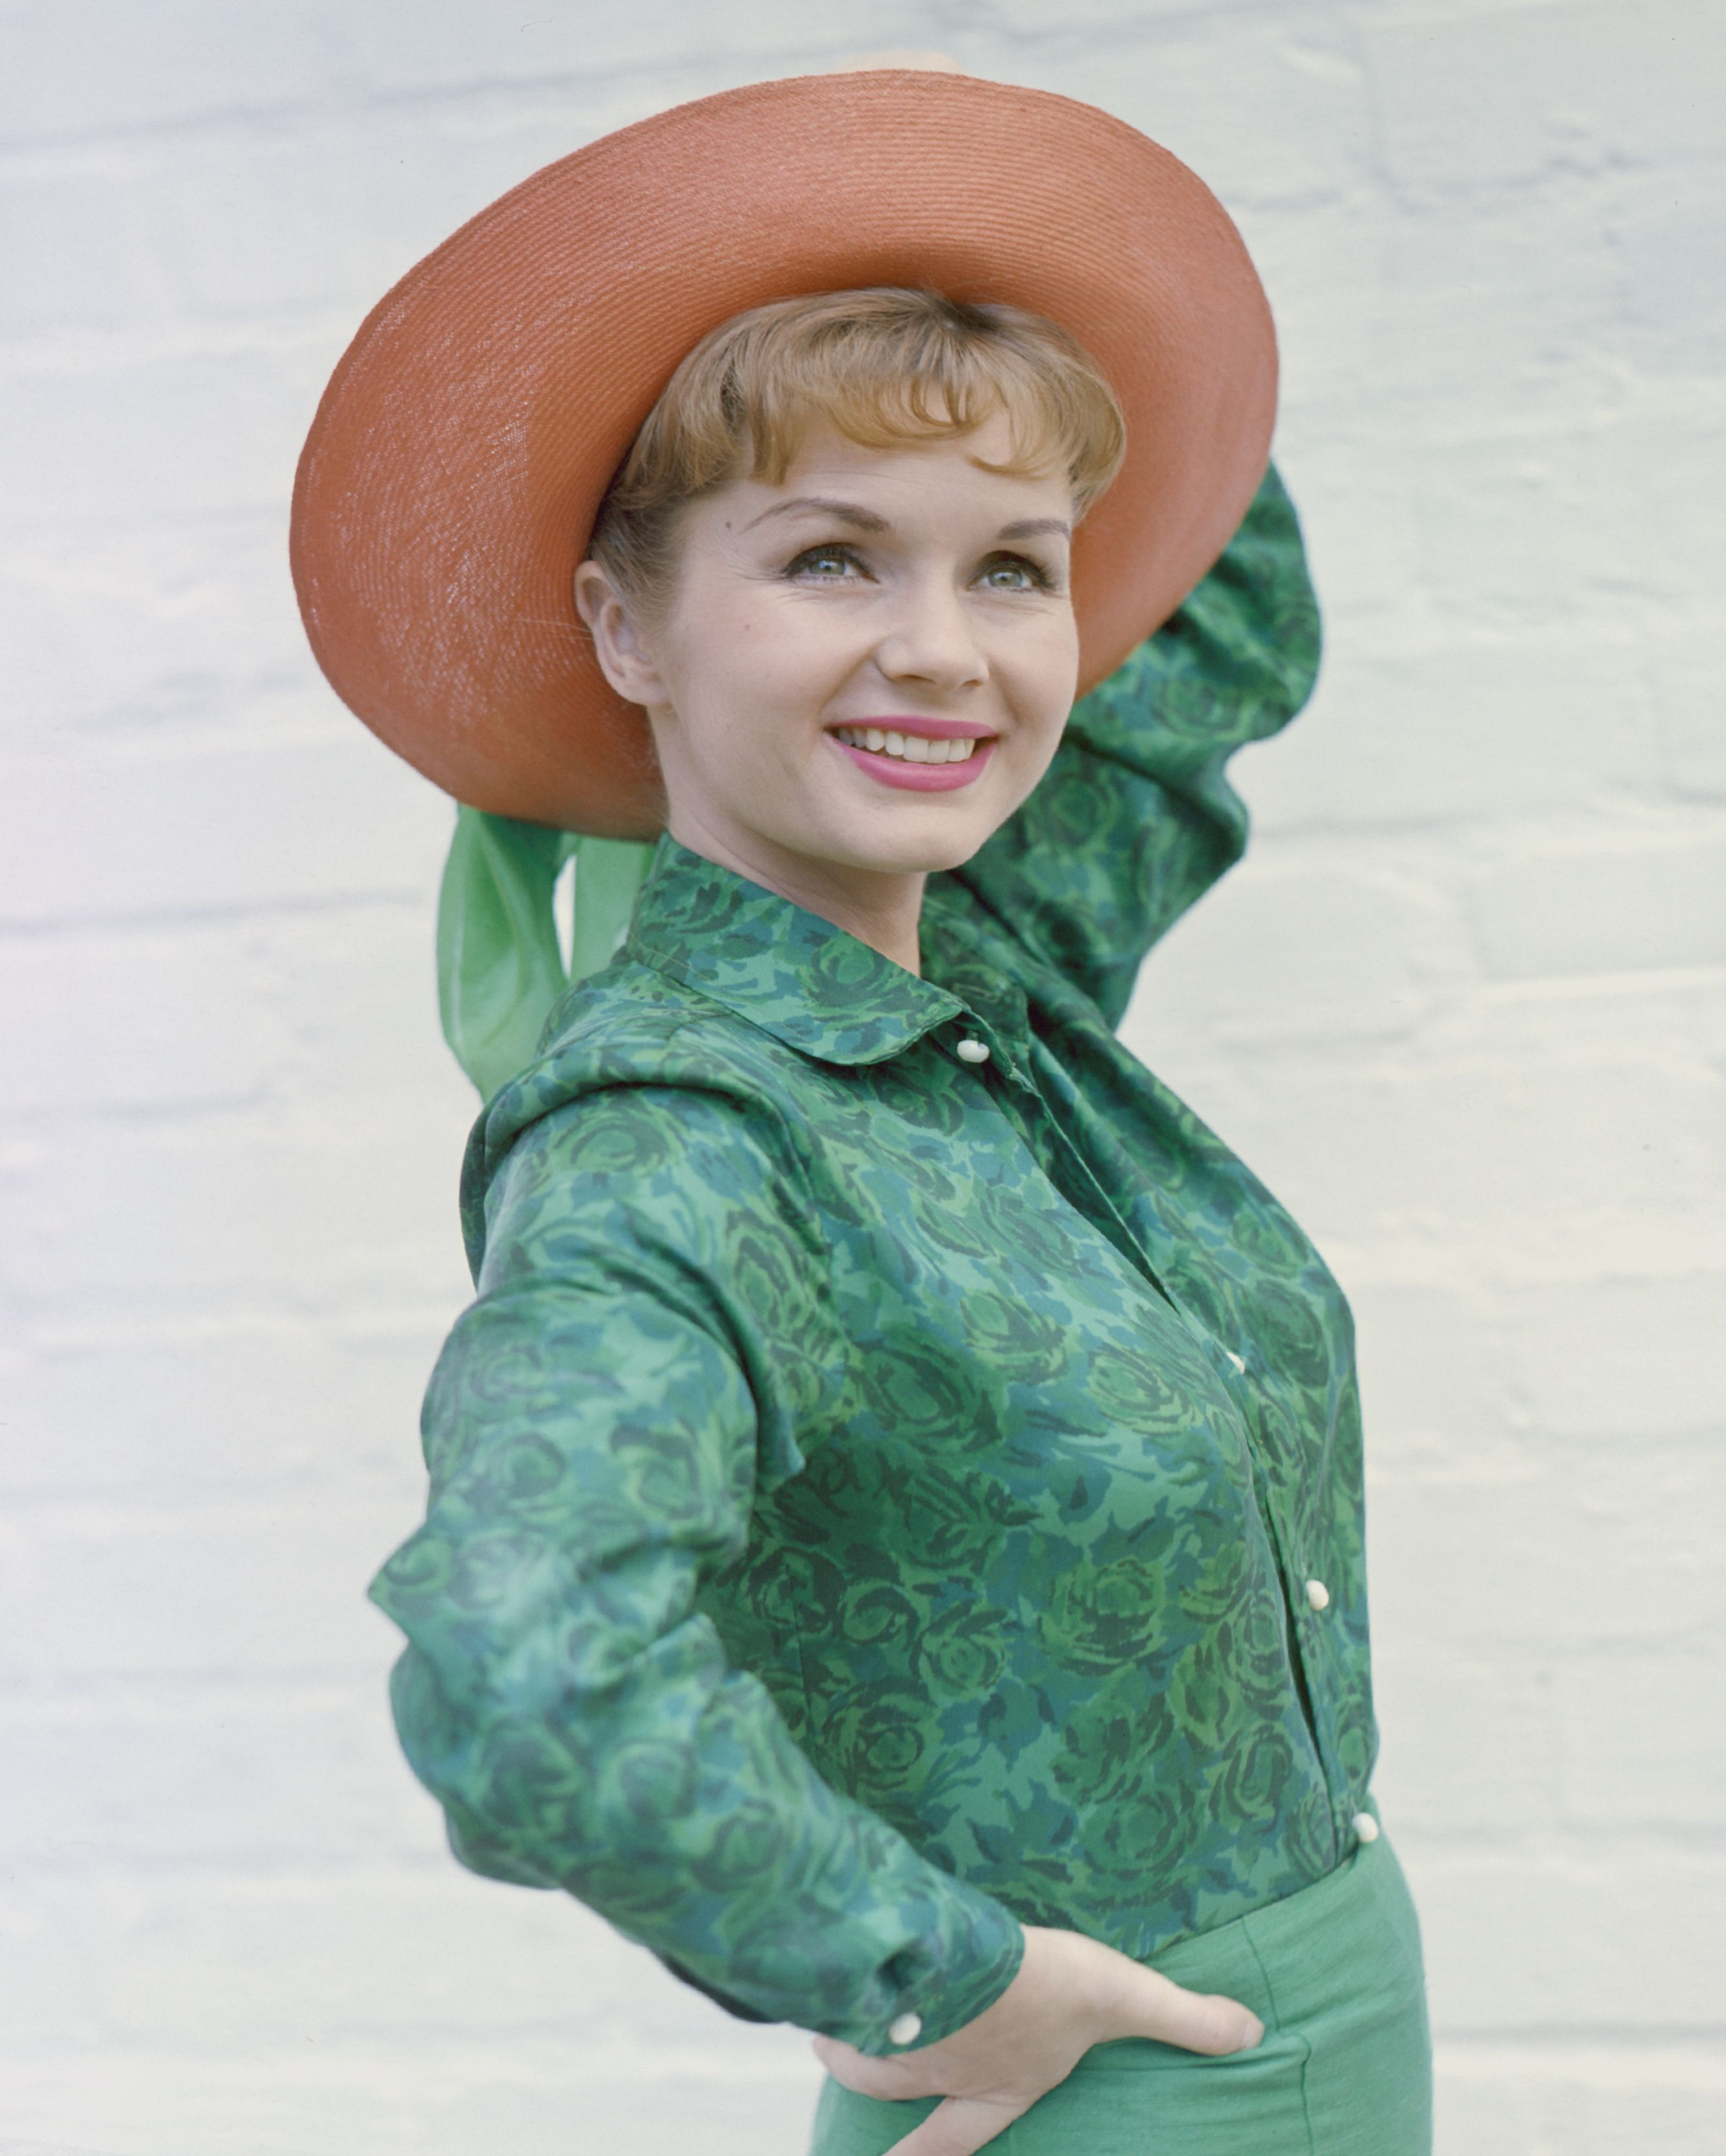 Actress Debbie Reynolds pictured smiling while posing in a green shirt and wide-brimmed salmon pink hat on January 01, 1960 | Photo: Getty Images